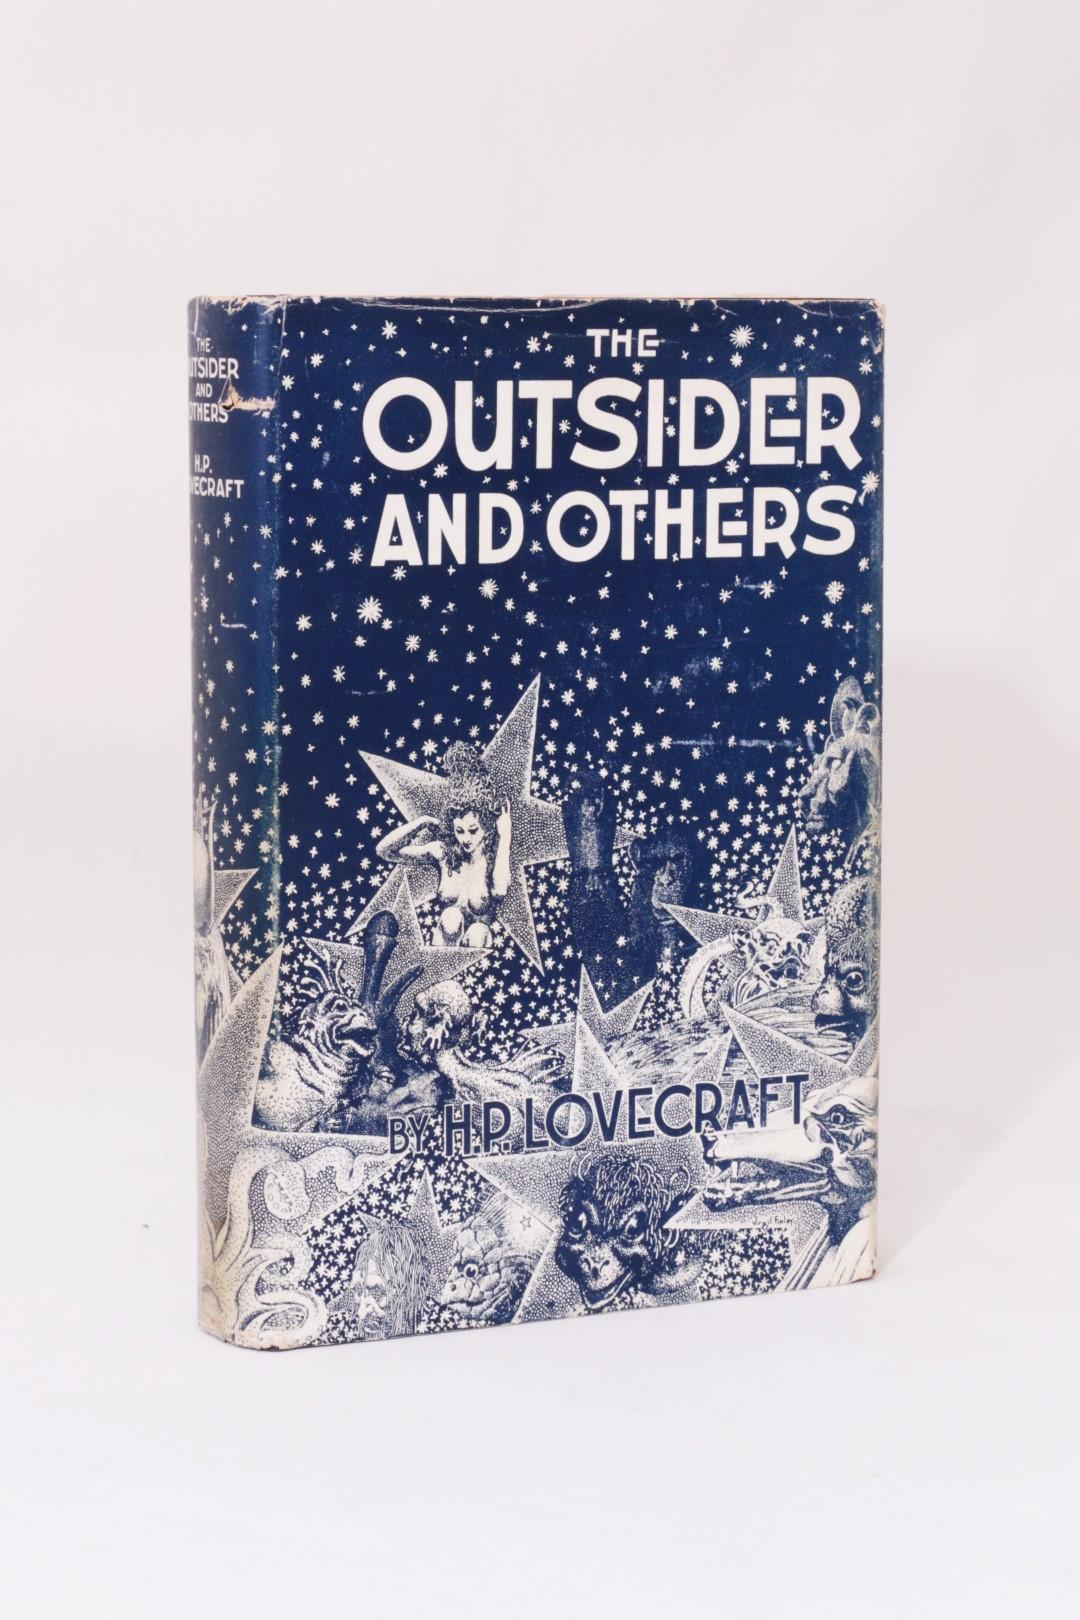 H.P. Lovecraft - The Outsider - Arkham House, 1939, First Edition.